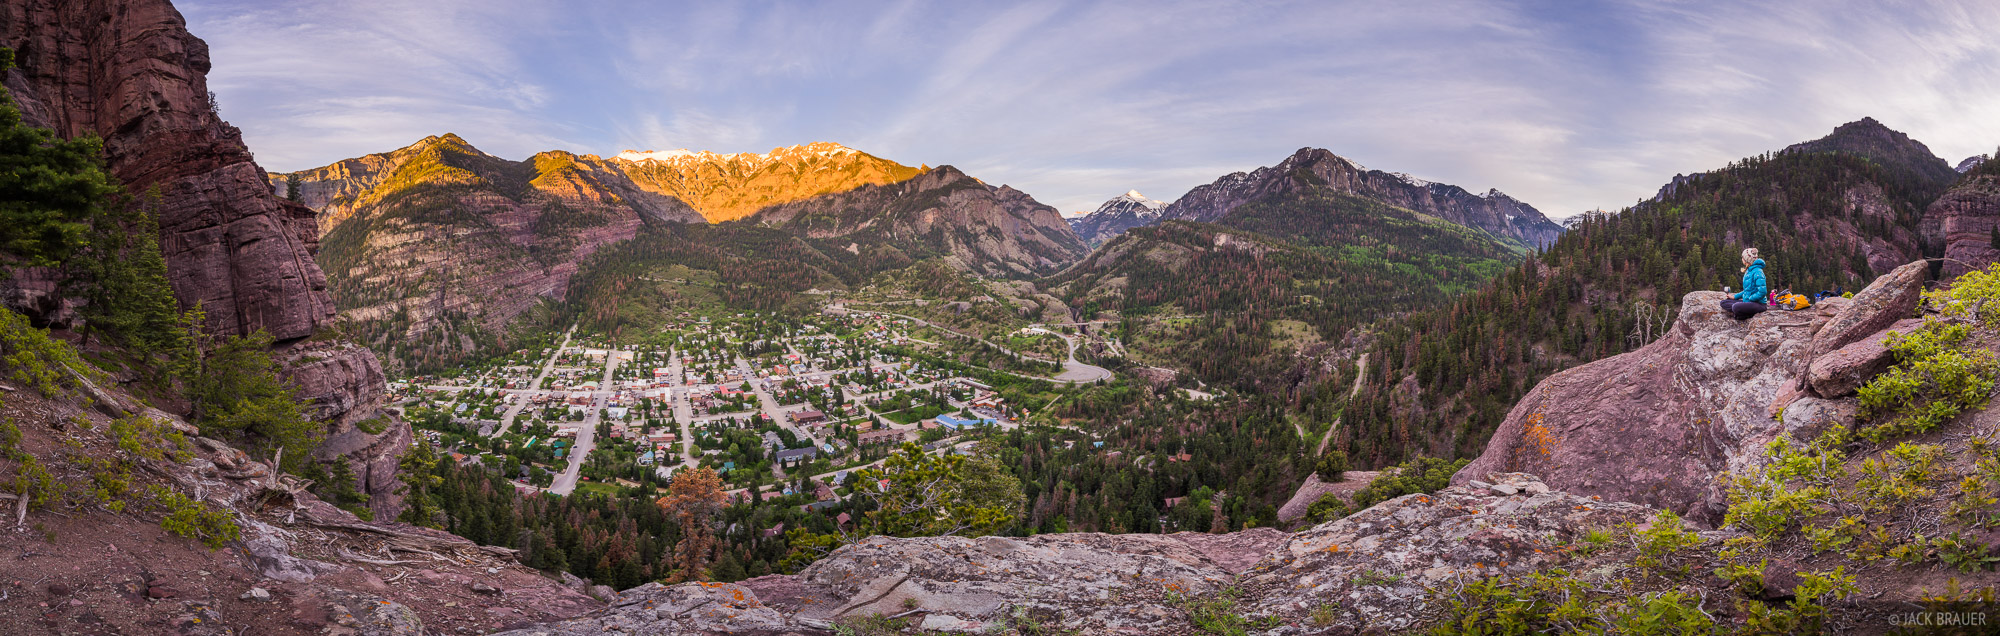 Ouray, San Juan Mountains, Colorado, panorama, June, photo